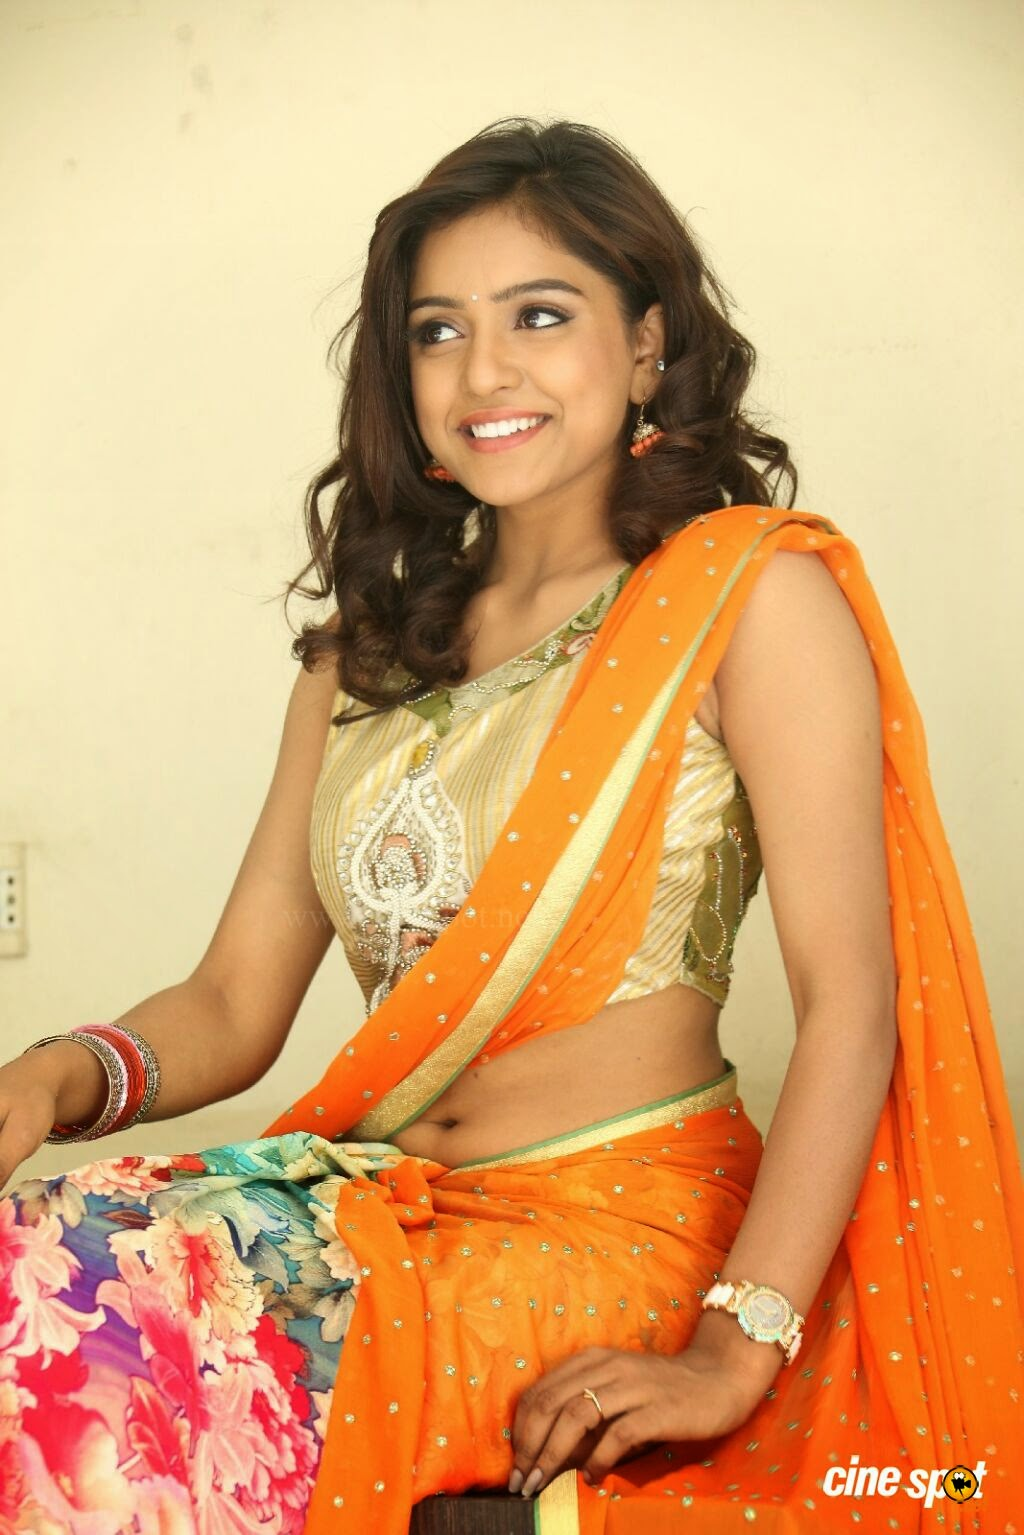 Young girl saree navel visible Hot actress